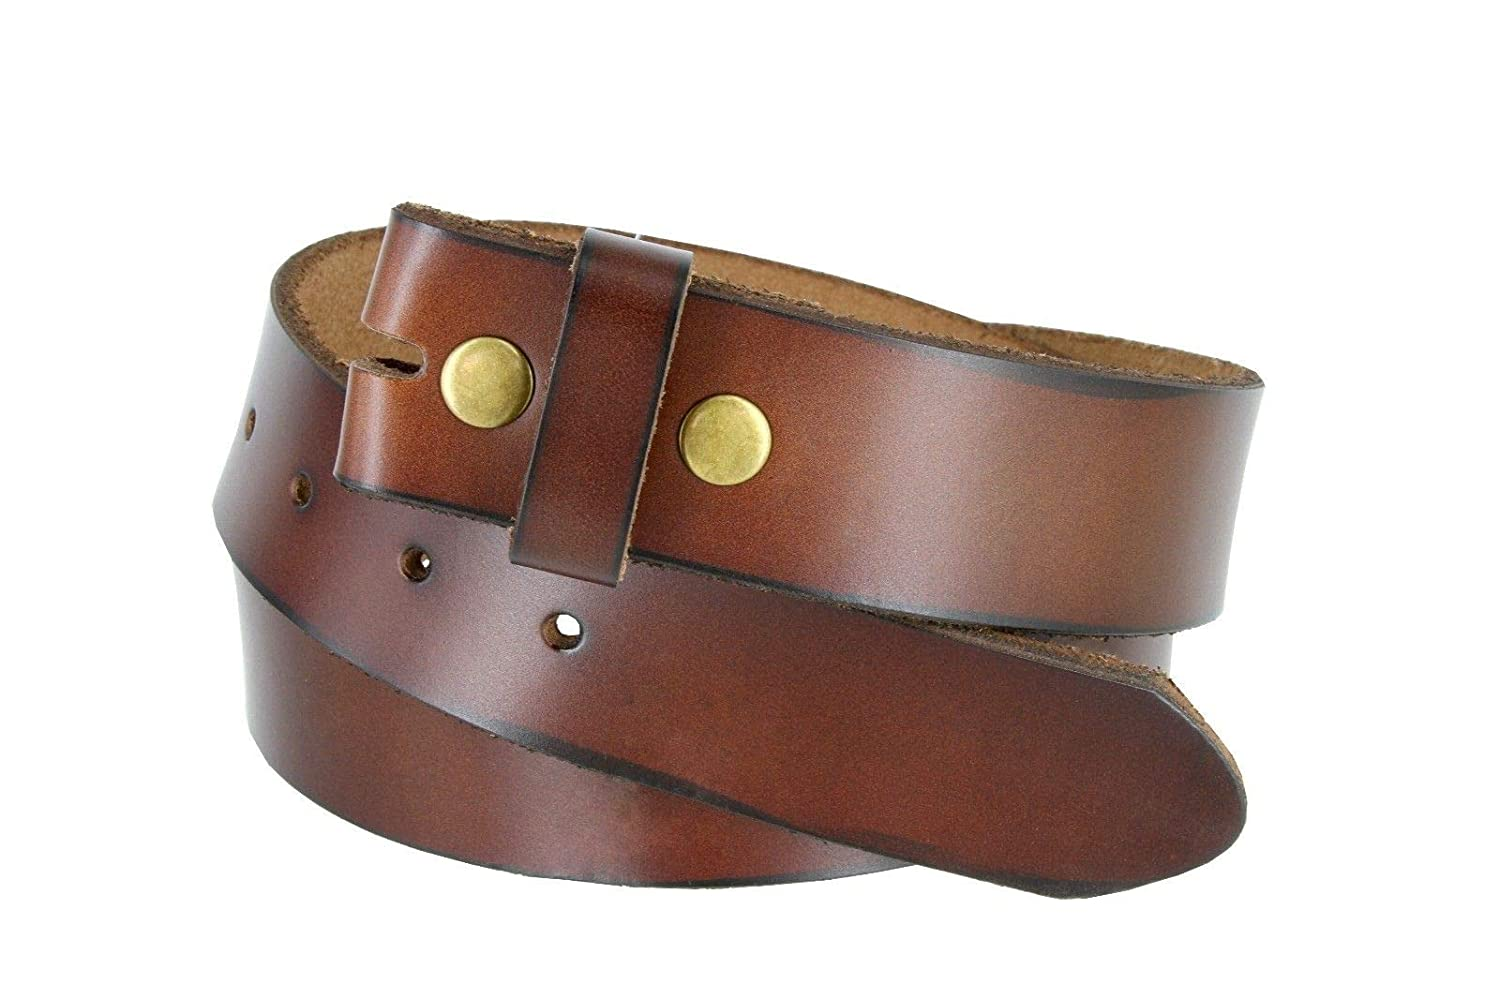 Genuine Leather Belt Strap Casual Belt Snap 1-1//2 Wide BSC